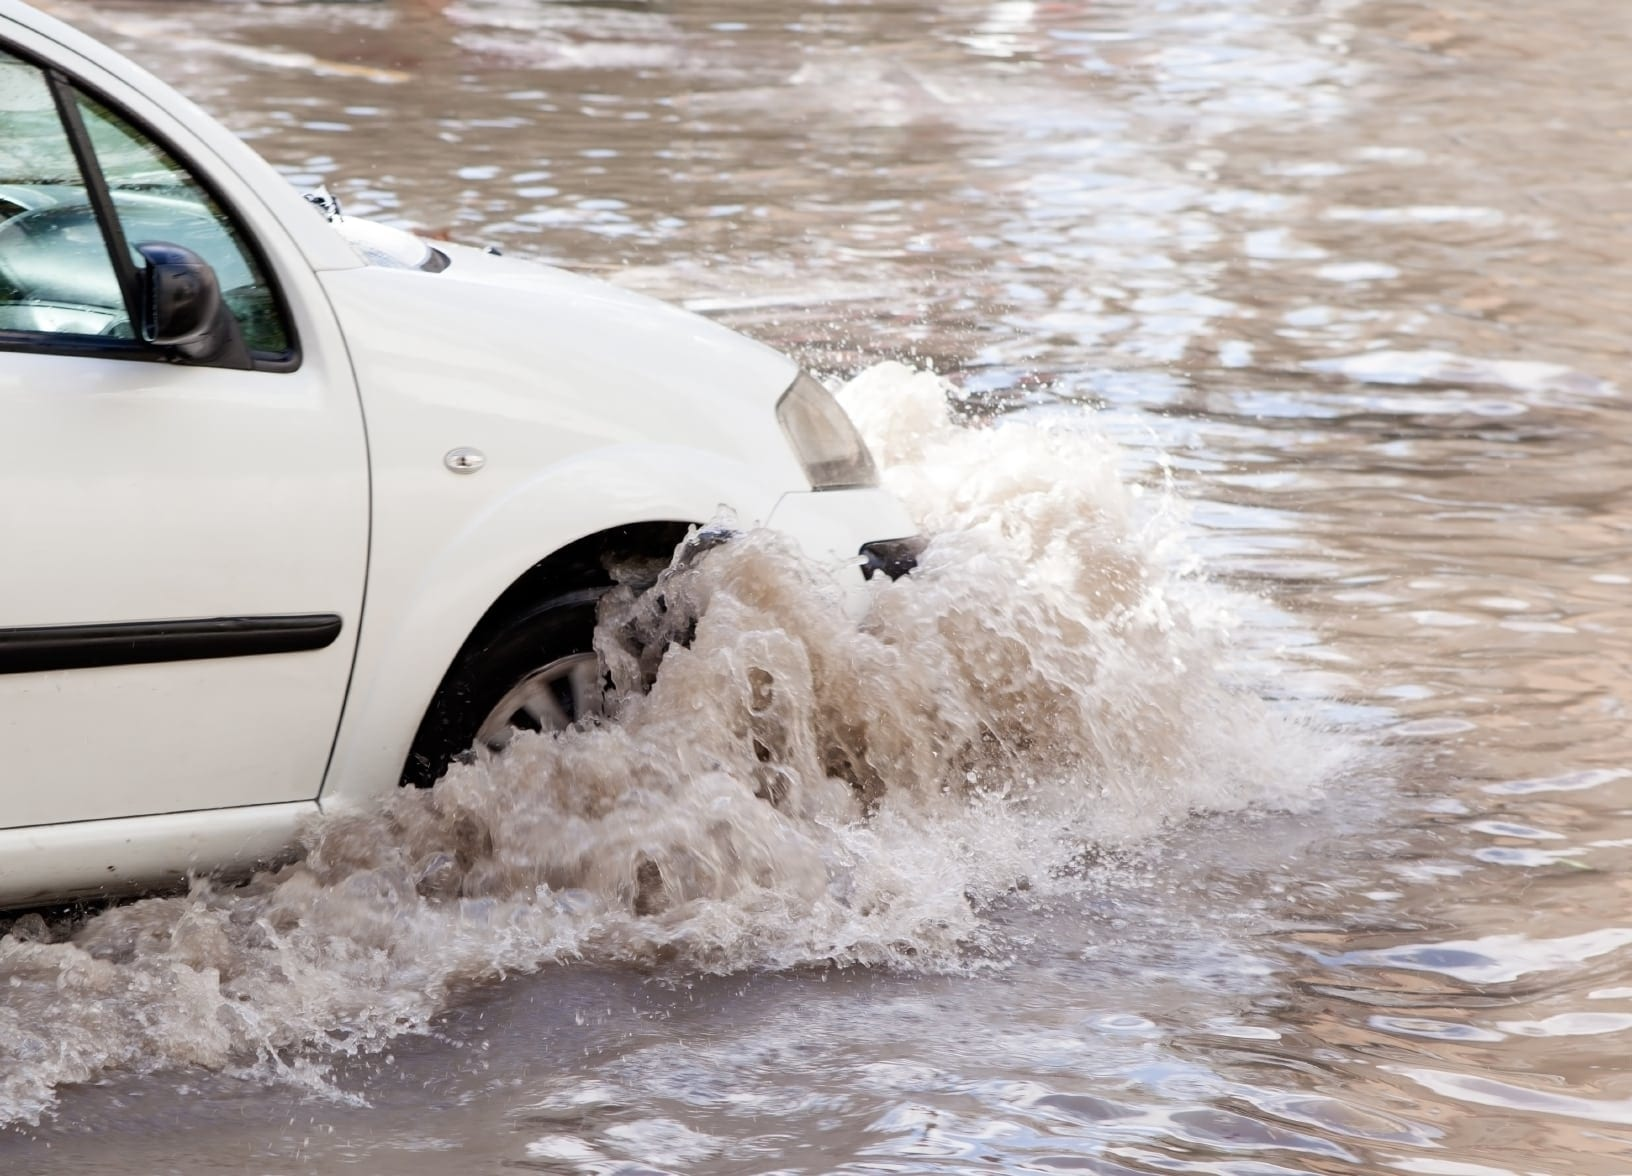 White Car Driving Into Flood Waters Stock Photo